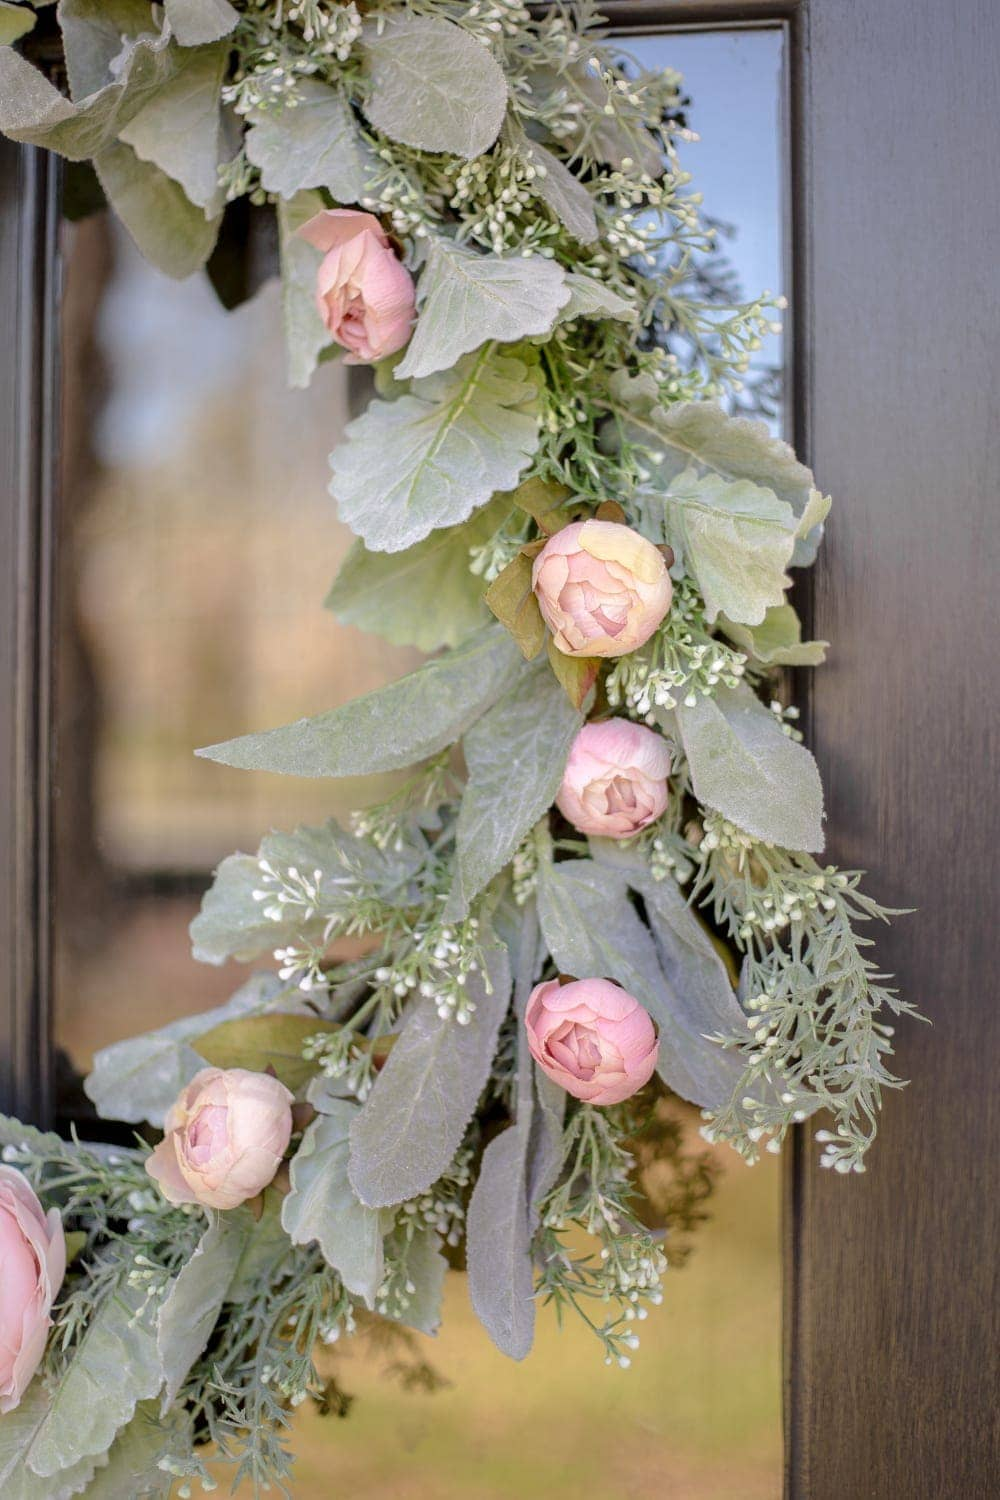 DIY Sage and Blush Spring Wreath | A step-by-step tutorial for making a spring wreath from scratch using artificial sage greenery and blush flowers for soft, romantic style.